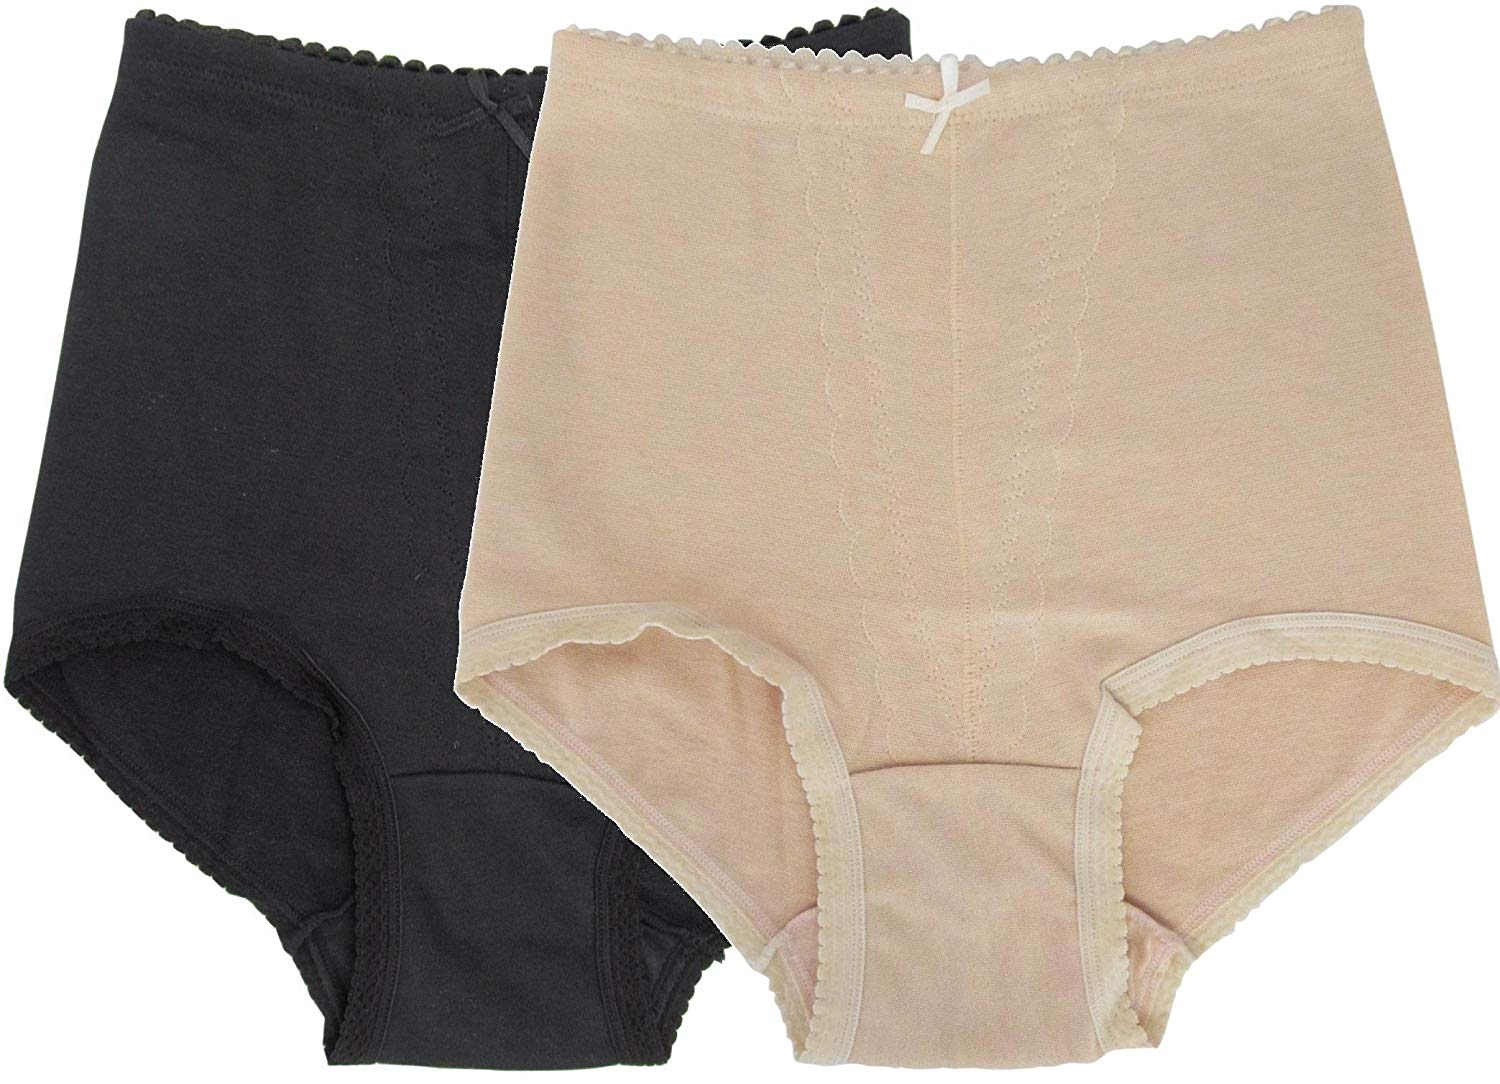 Women's Plus Size 1-Pc/Pk or 2-Pc/Pk High Waist Cotton Panty Brief